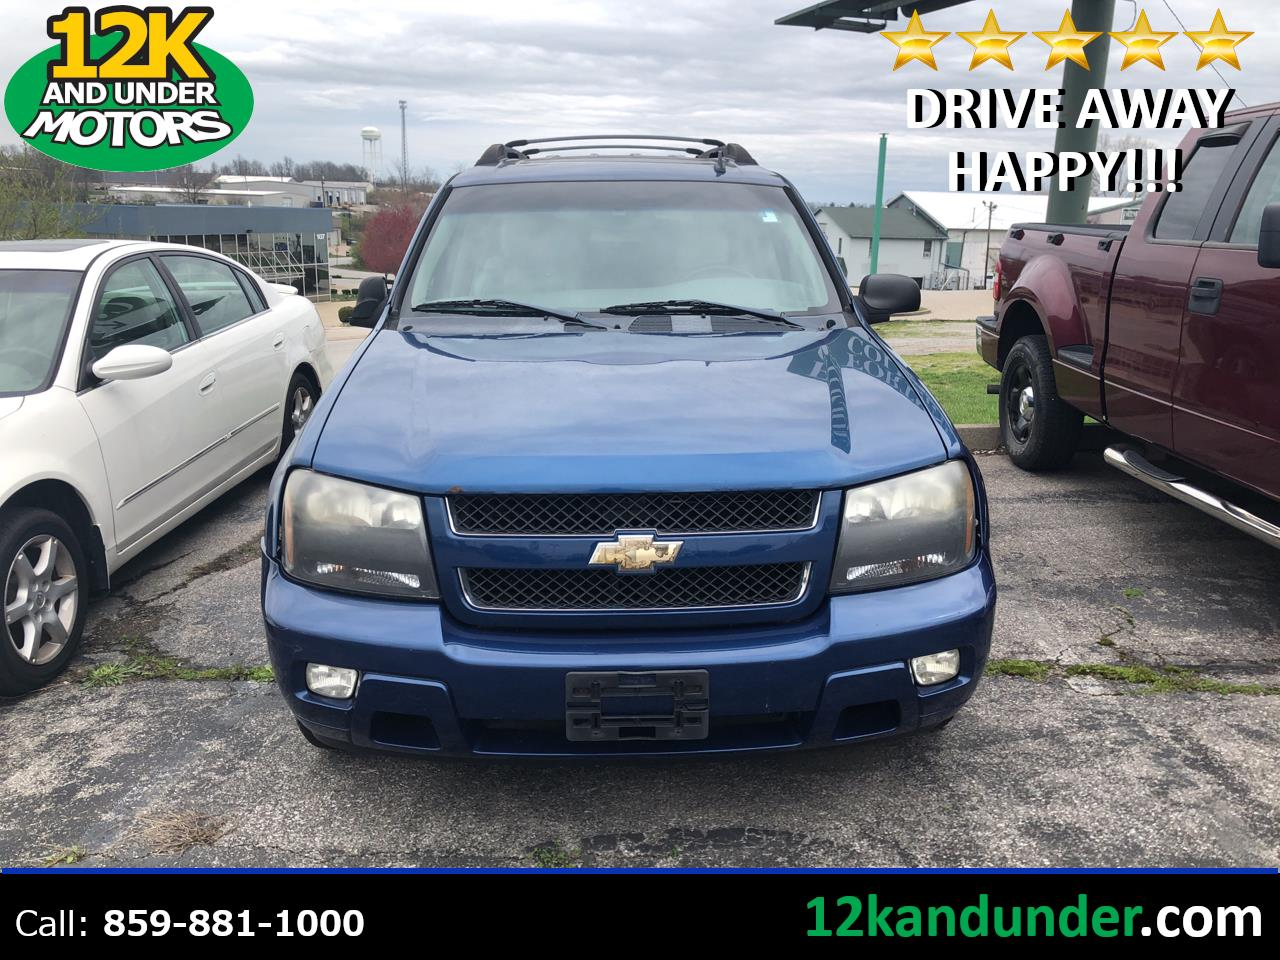 Chevrolet TrailBlazer 4dr 4WD EXT LT 2006